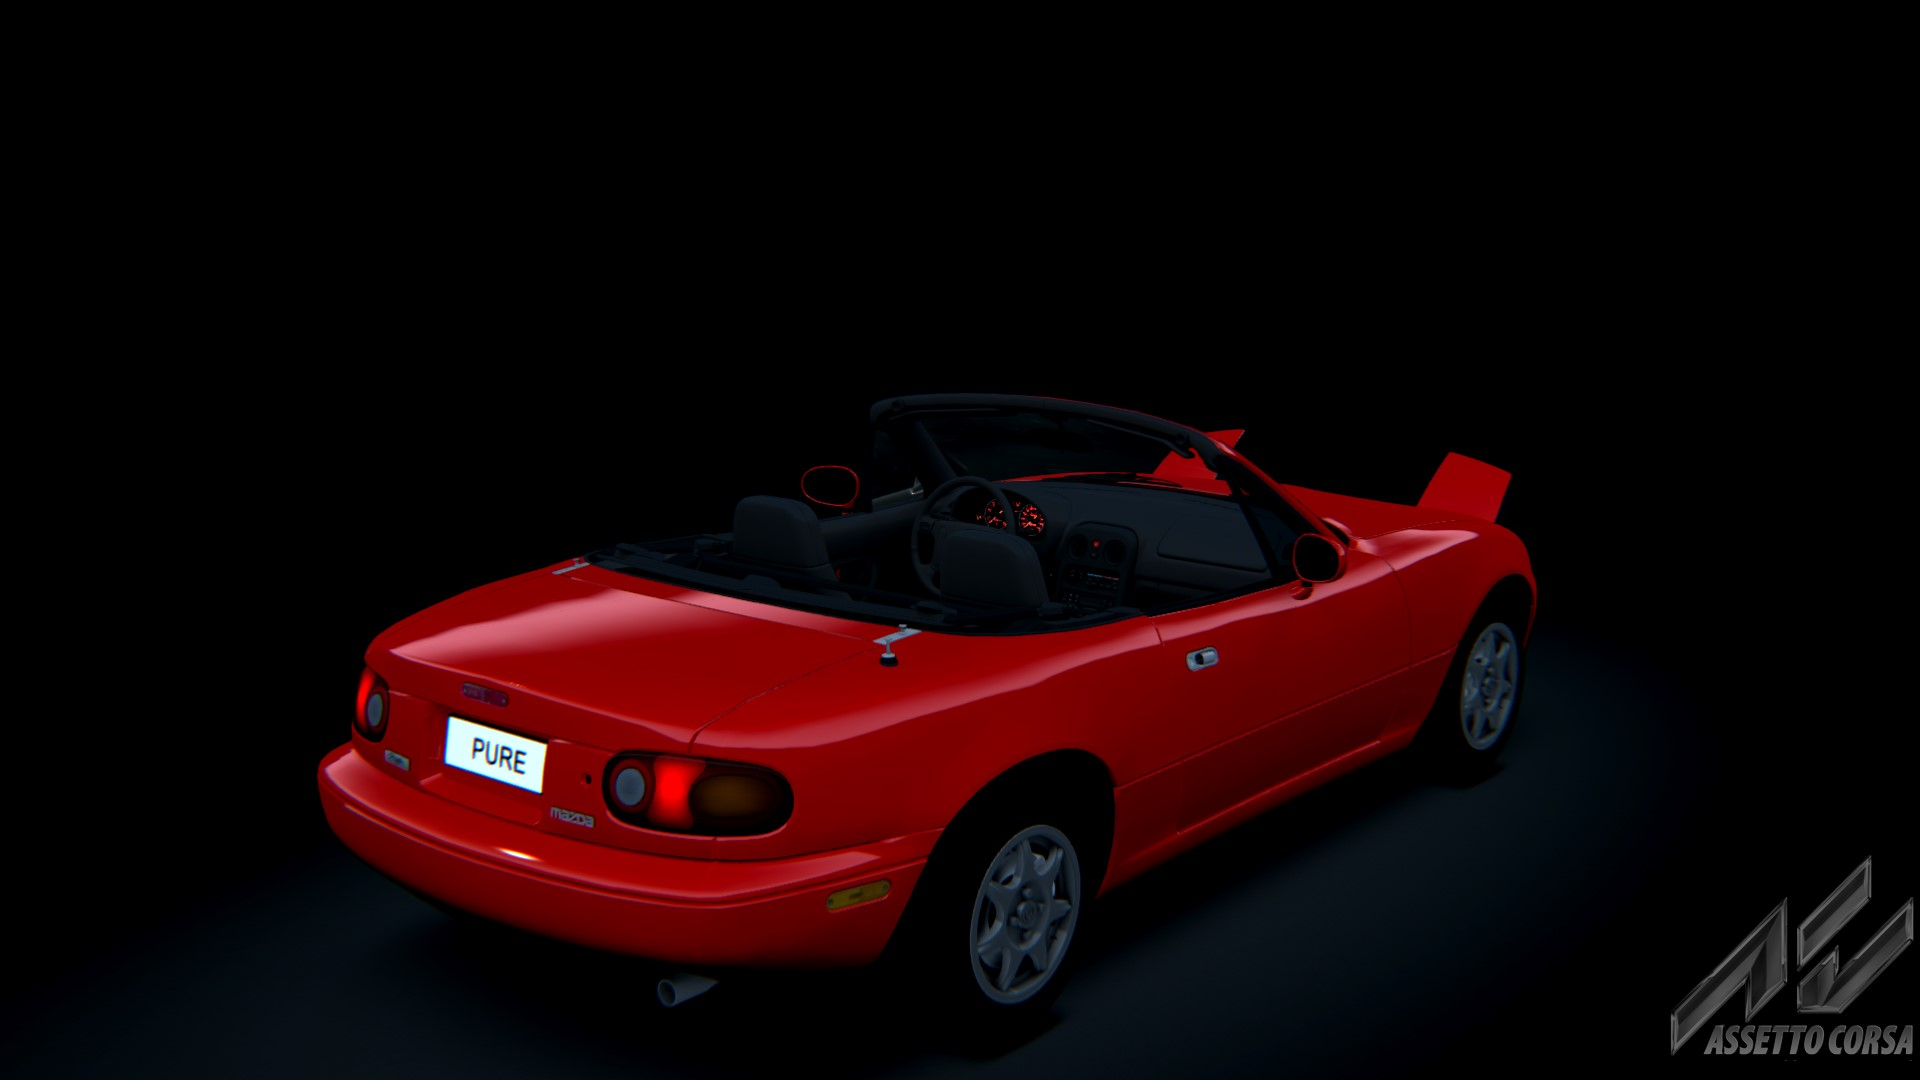 Showroom_mazda_miata_29-5-2015-23-23-43.jpg